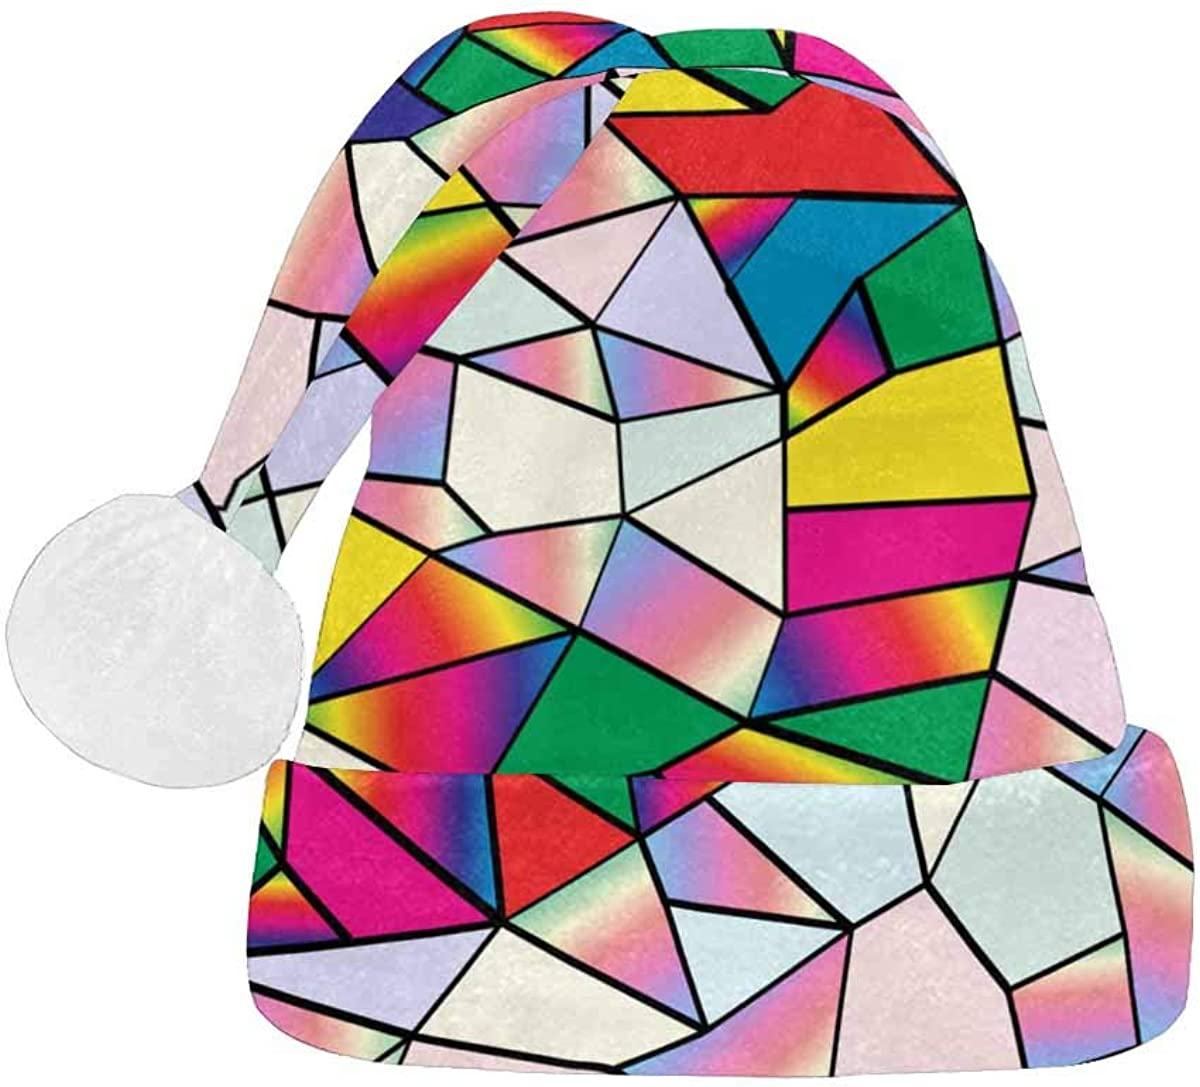 InterestPrint Christmas Santa Hat for Fashion Design Adults High quality 2021 autumn and winter new